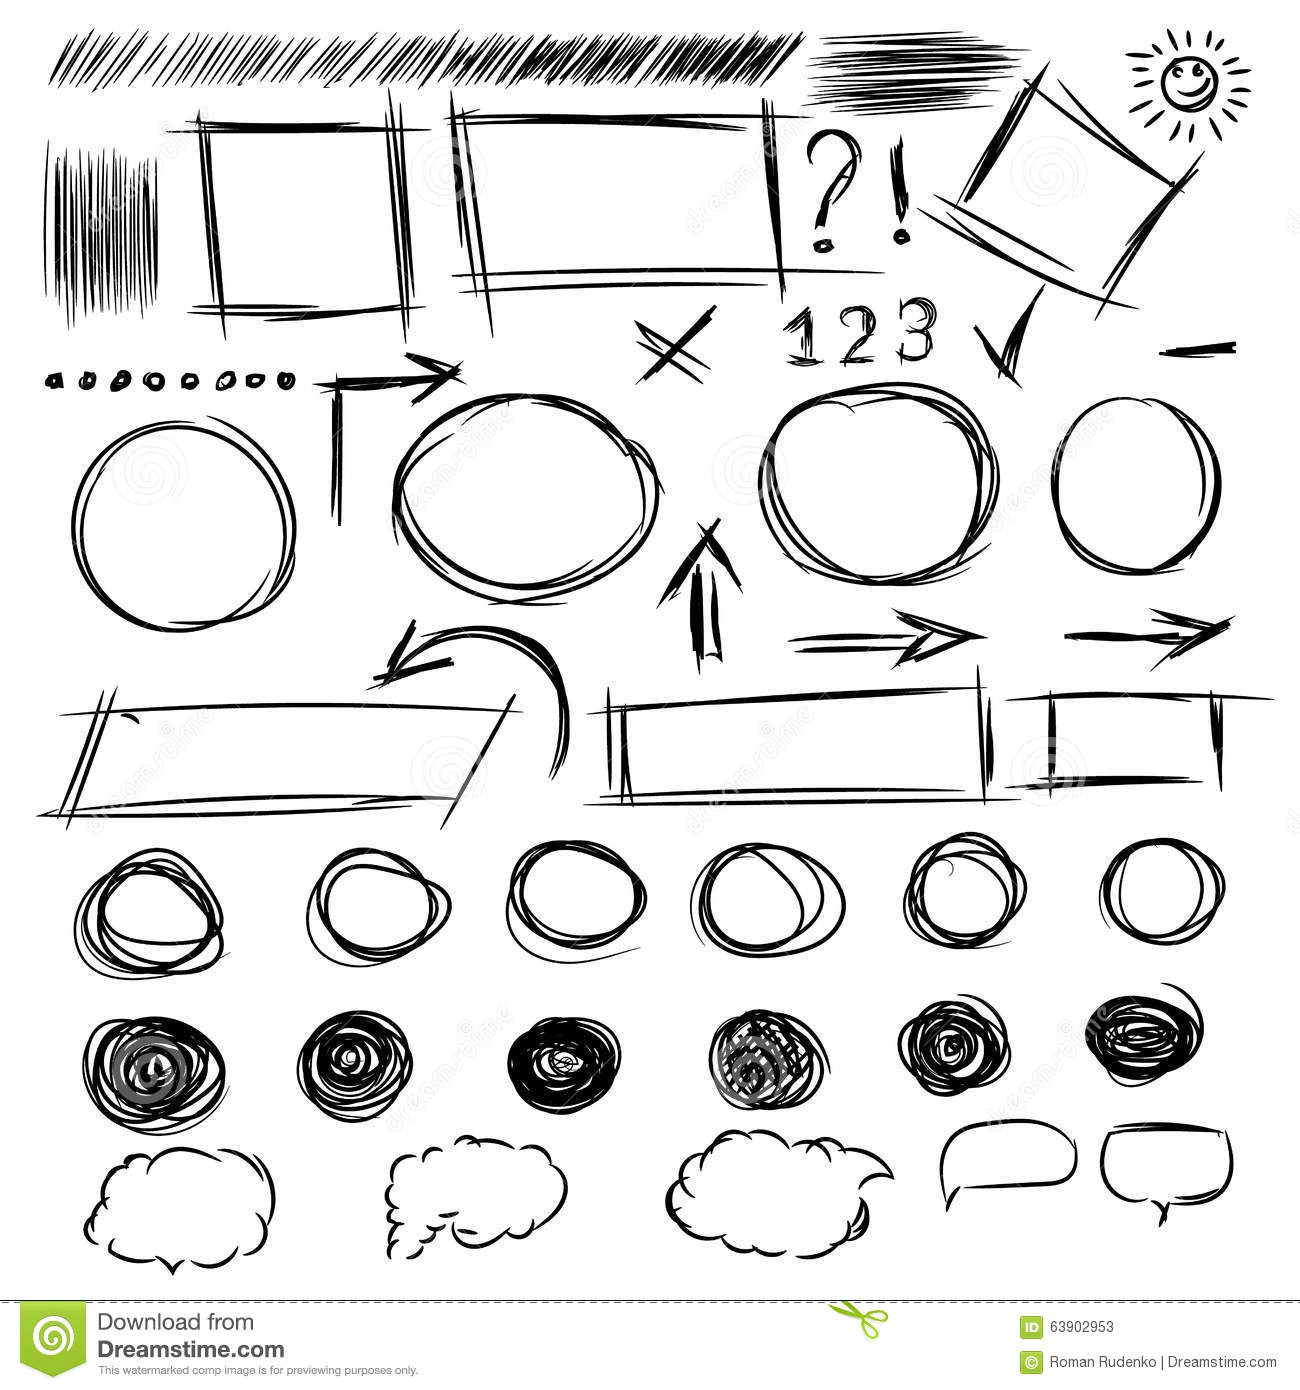 Drawing Lines Between Html Elements : Pencil sketches a set of doodle line drawings vector